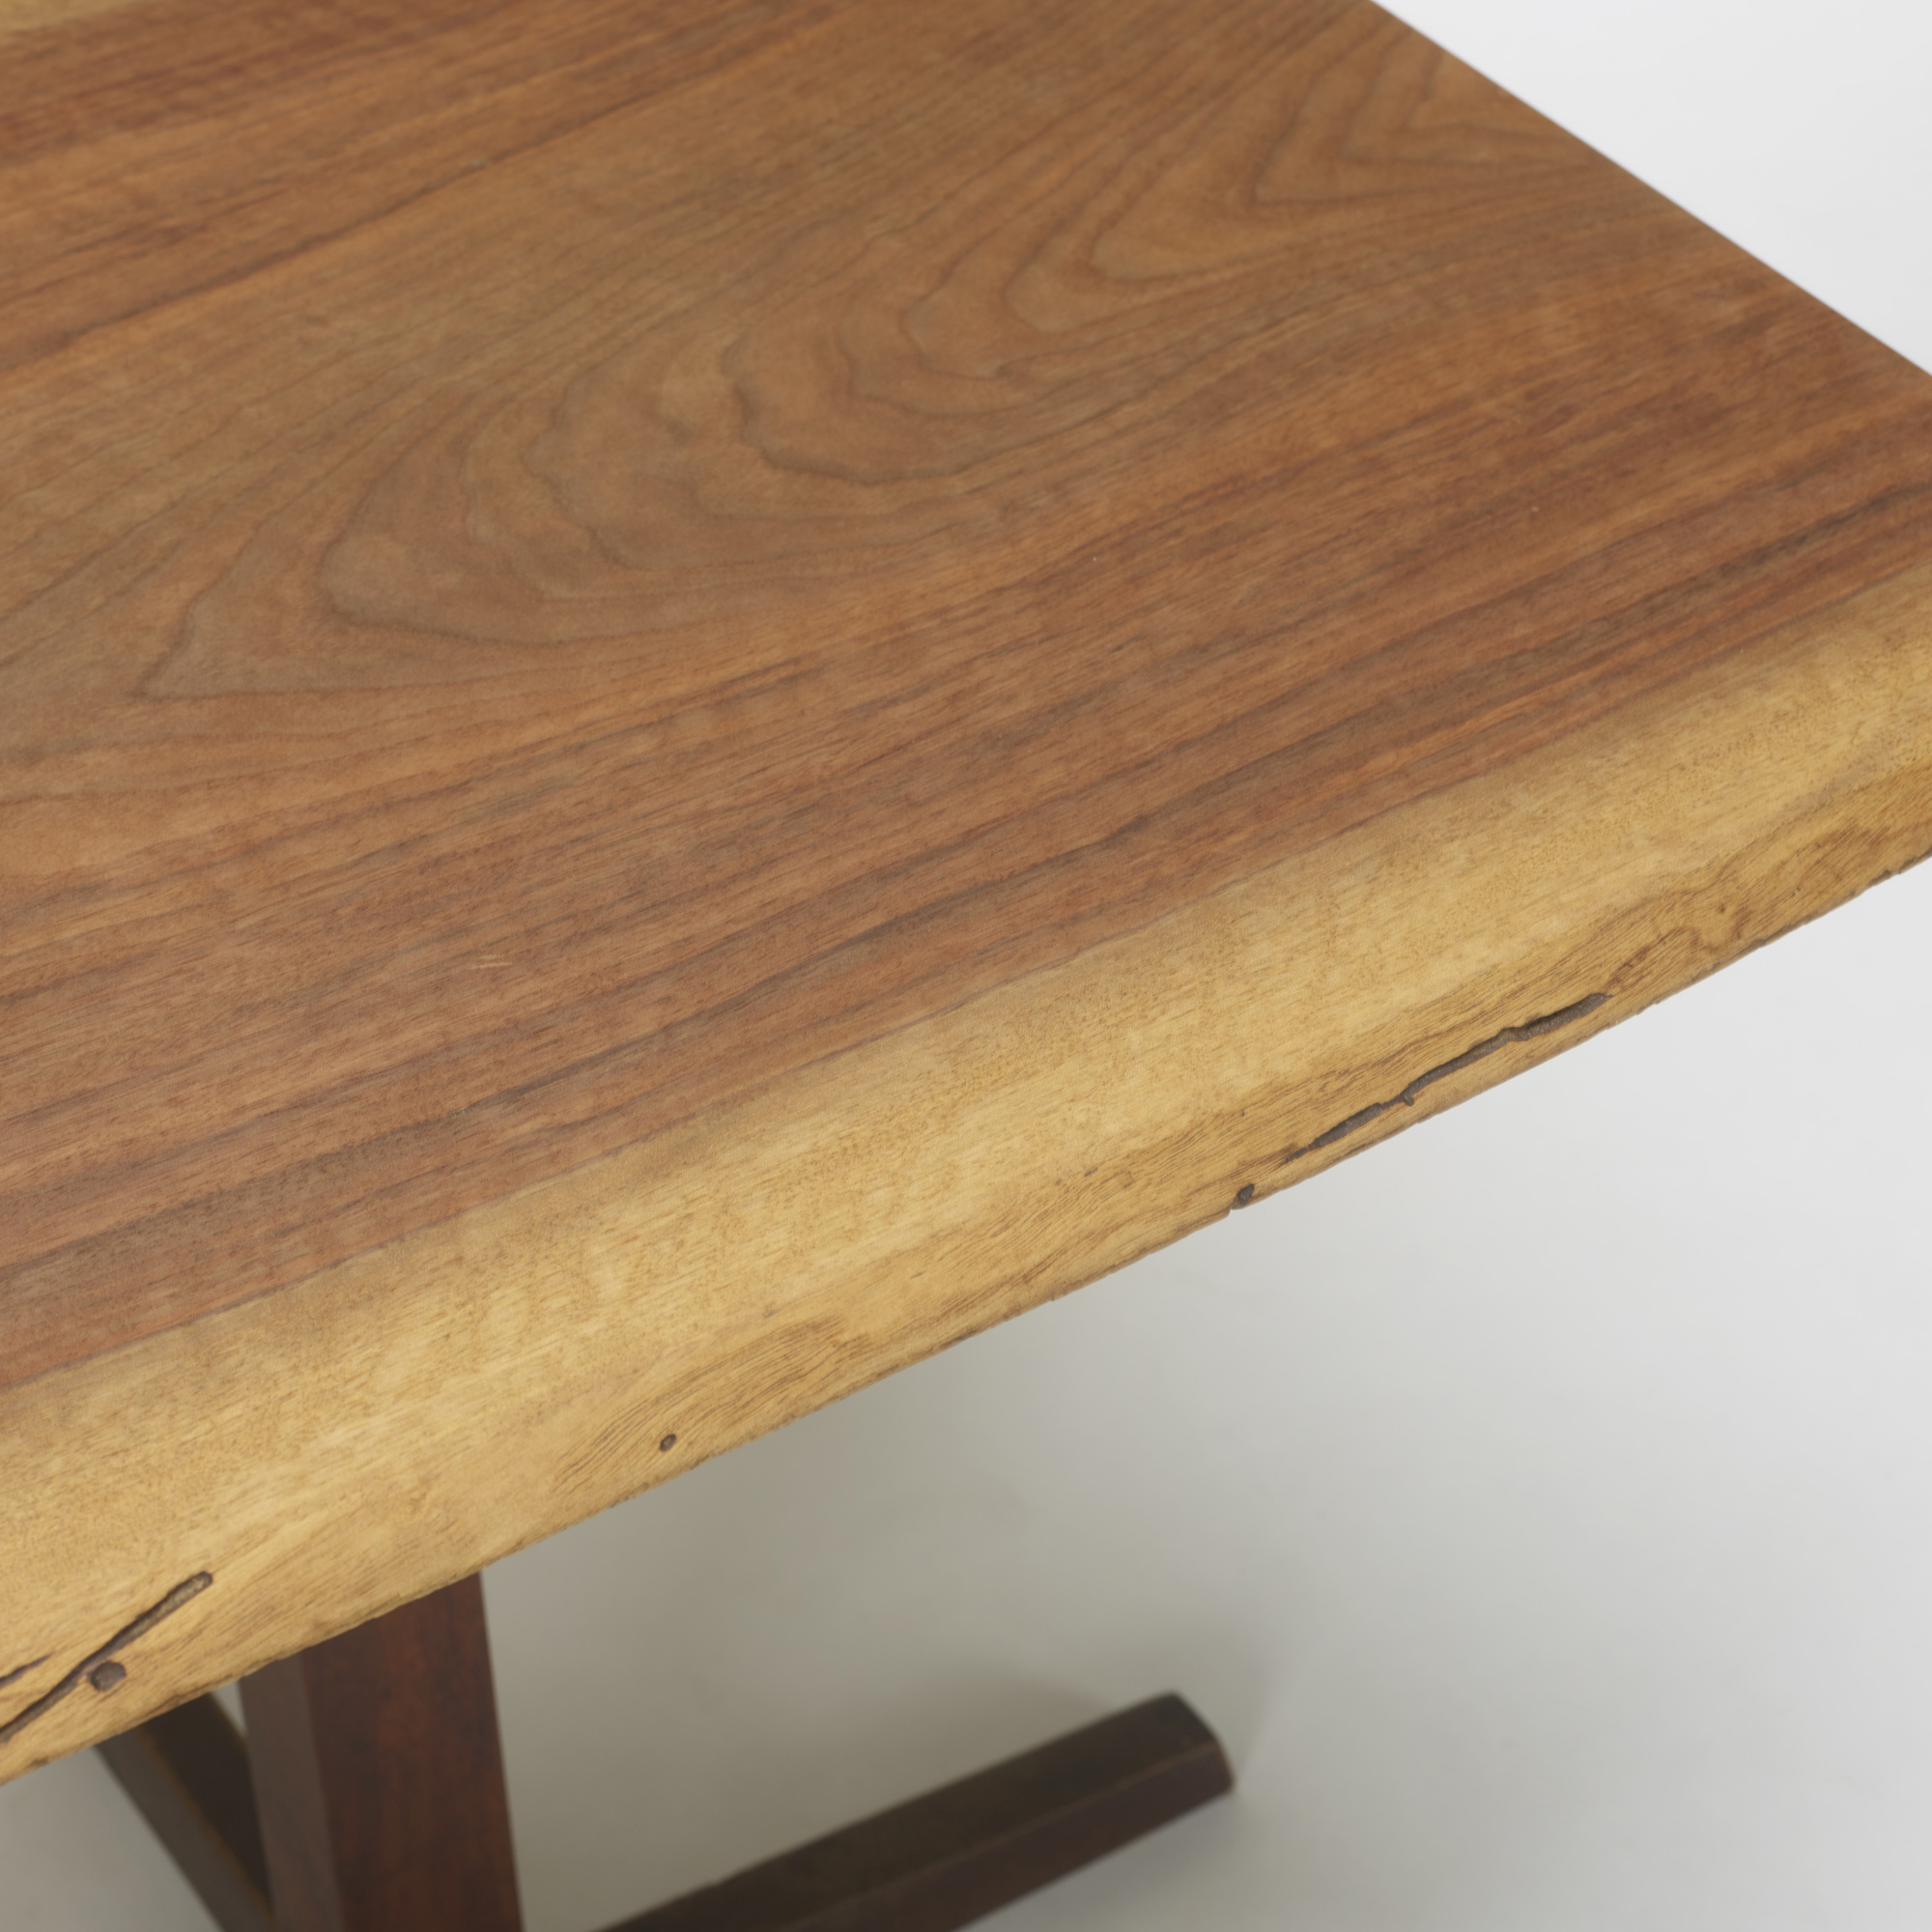 159: George Nakashima / Pedestal table (2 of 2)